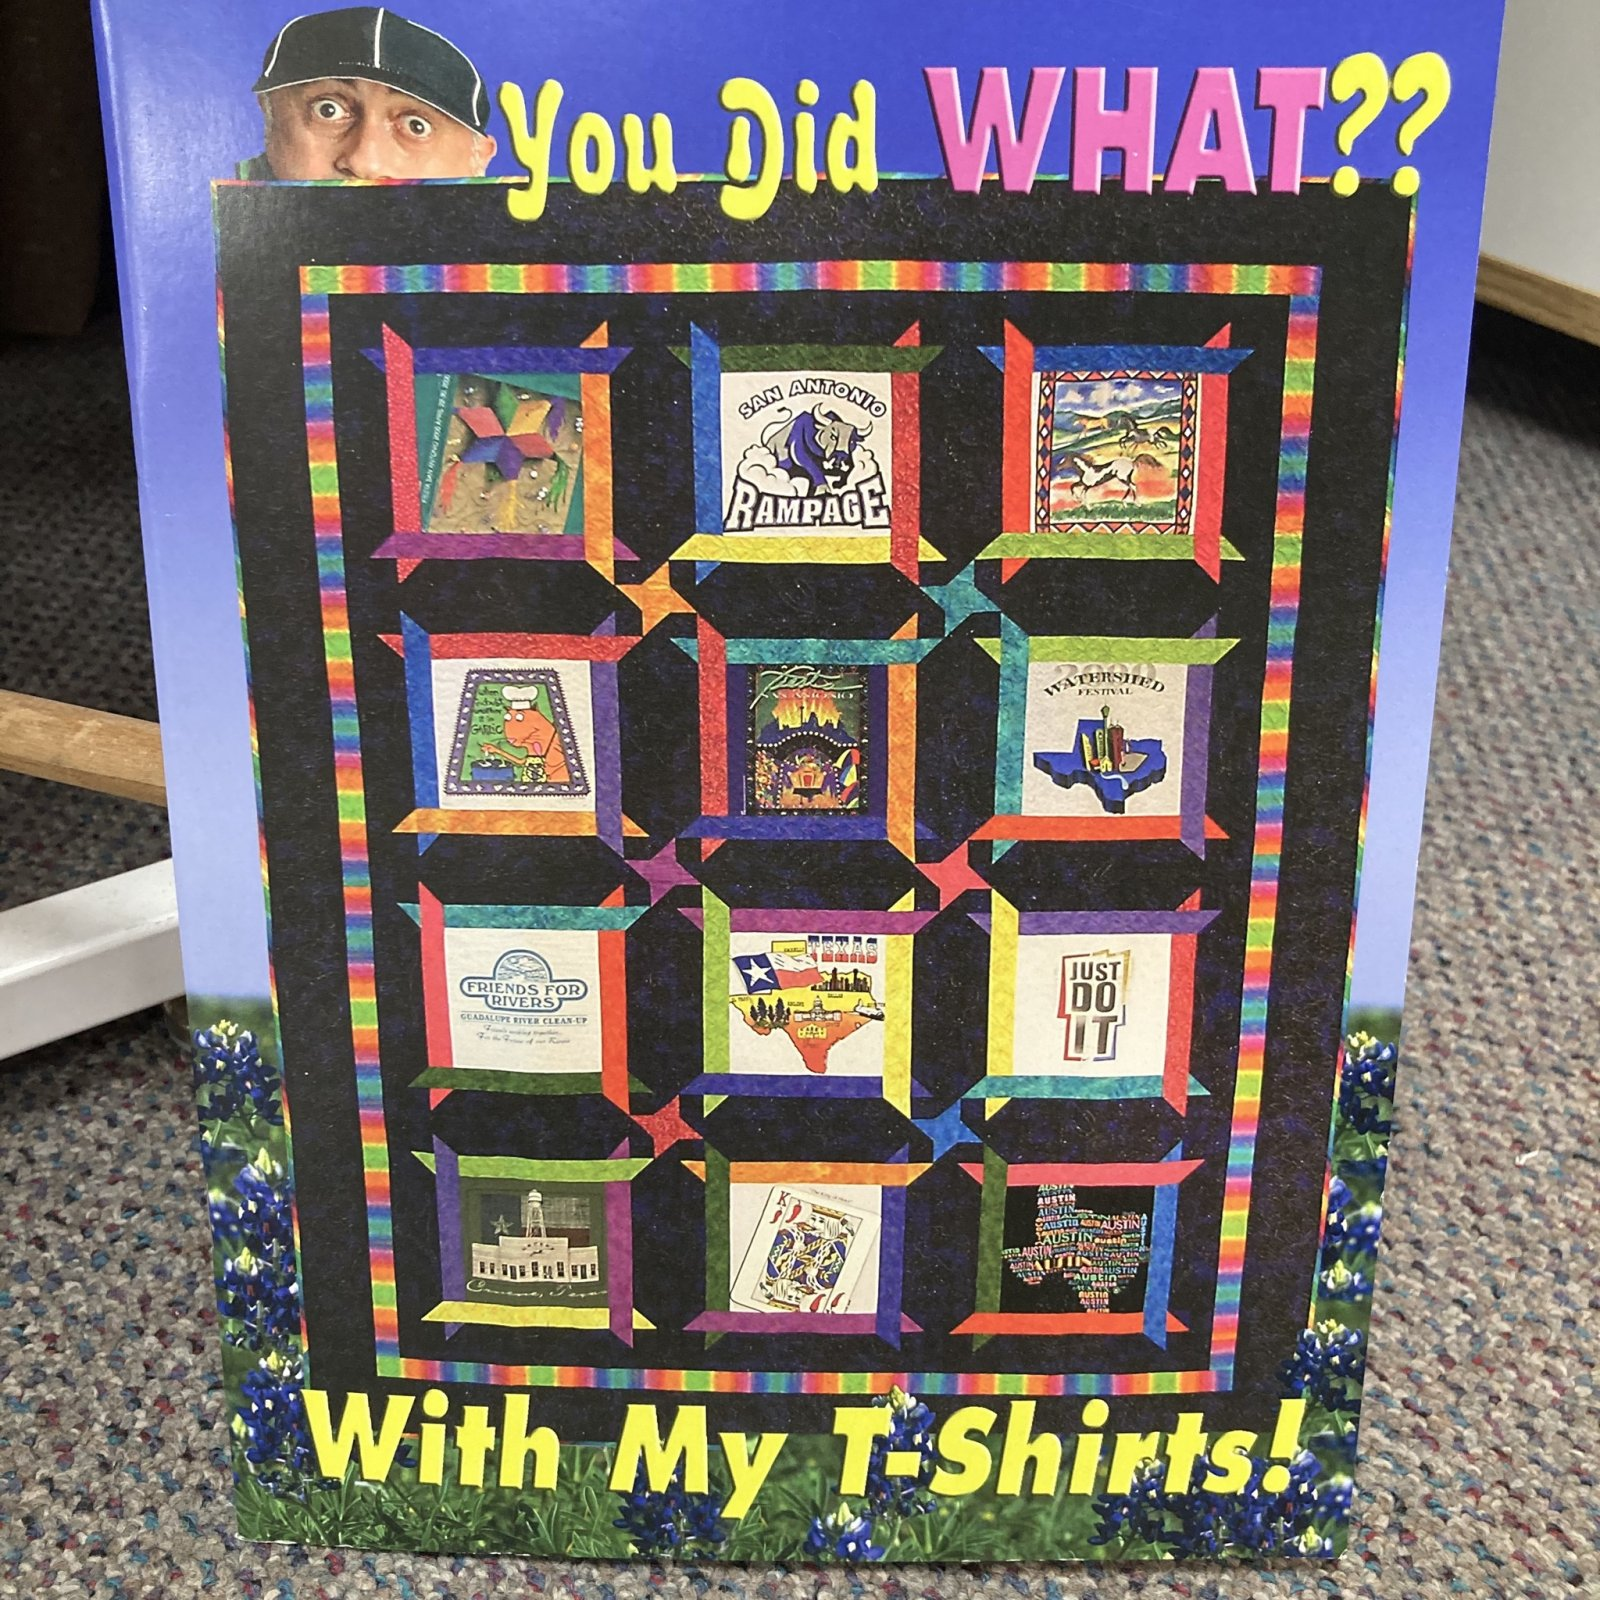 You Did What? With My T-Shirts!